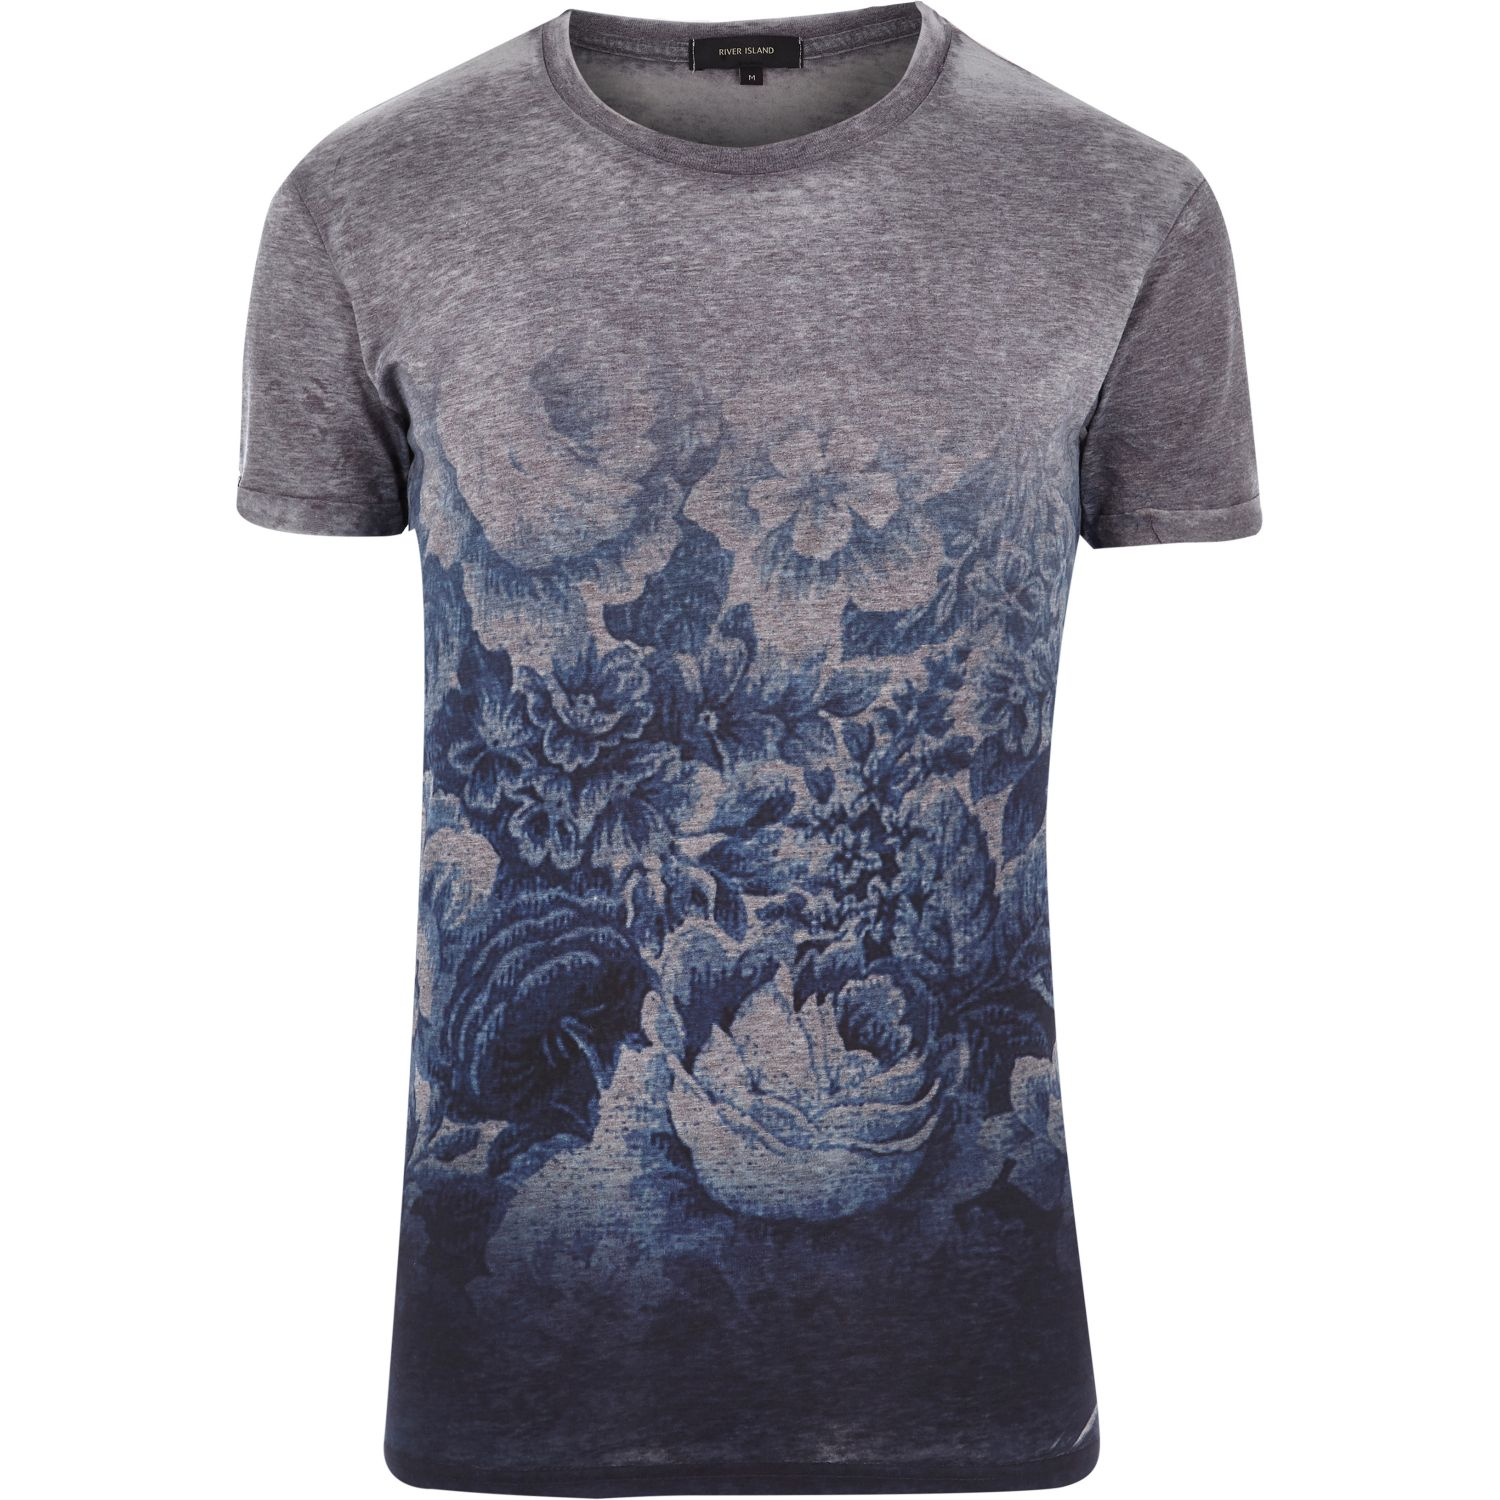 River island grey short sleeve fade print t shirt in gray for Photo printing on t shirts